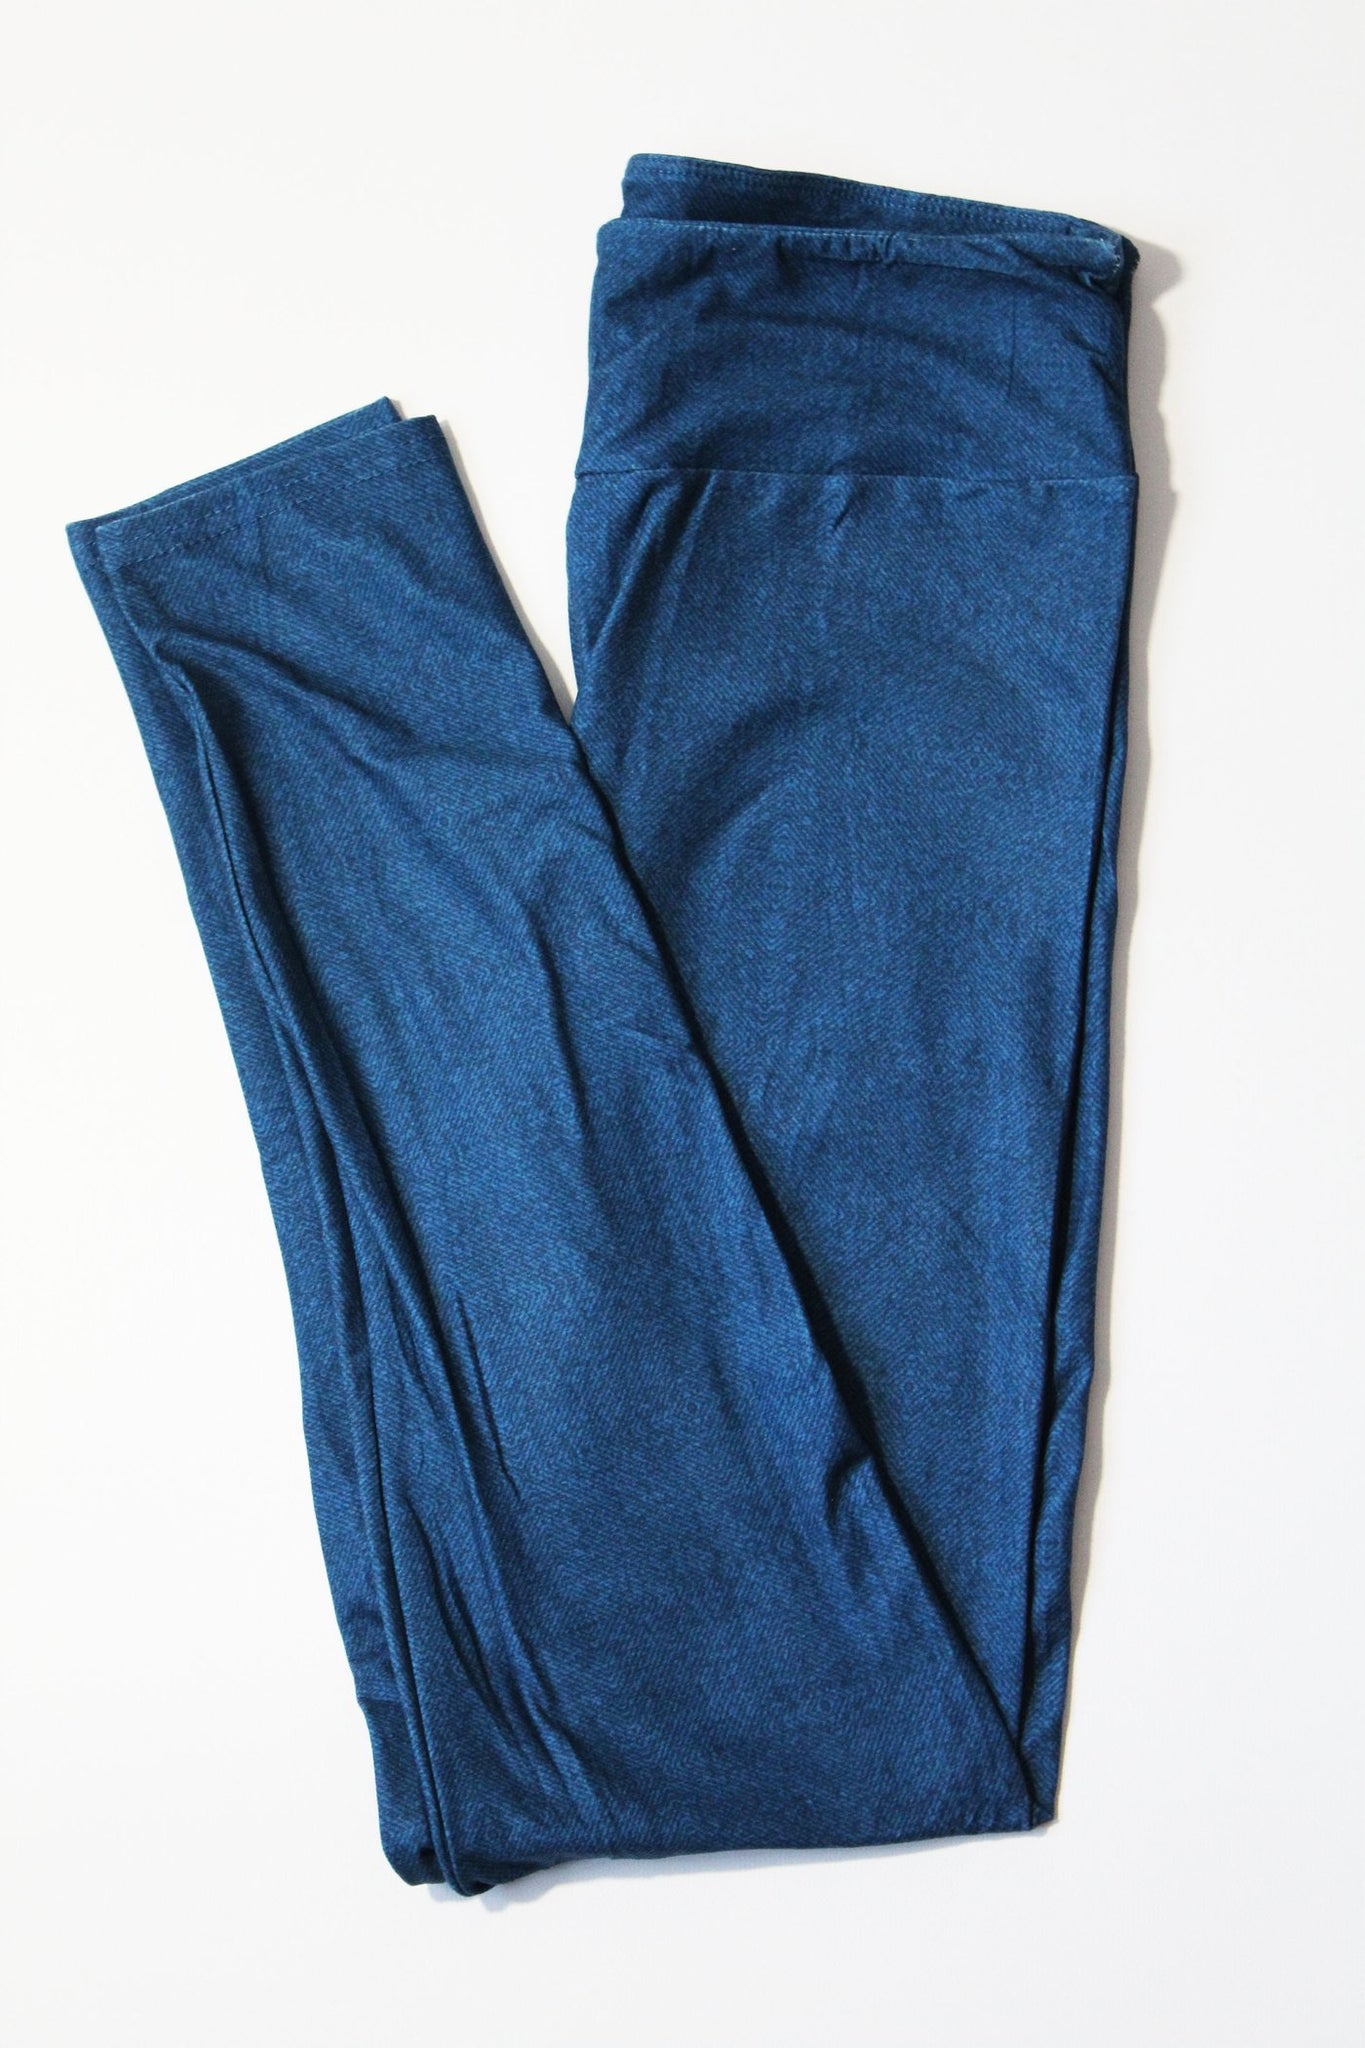 238 Jeans Capris Leggings TC2